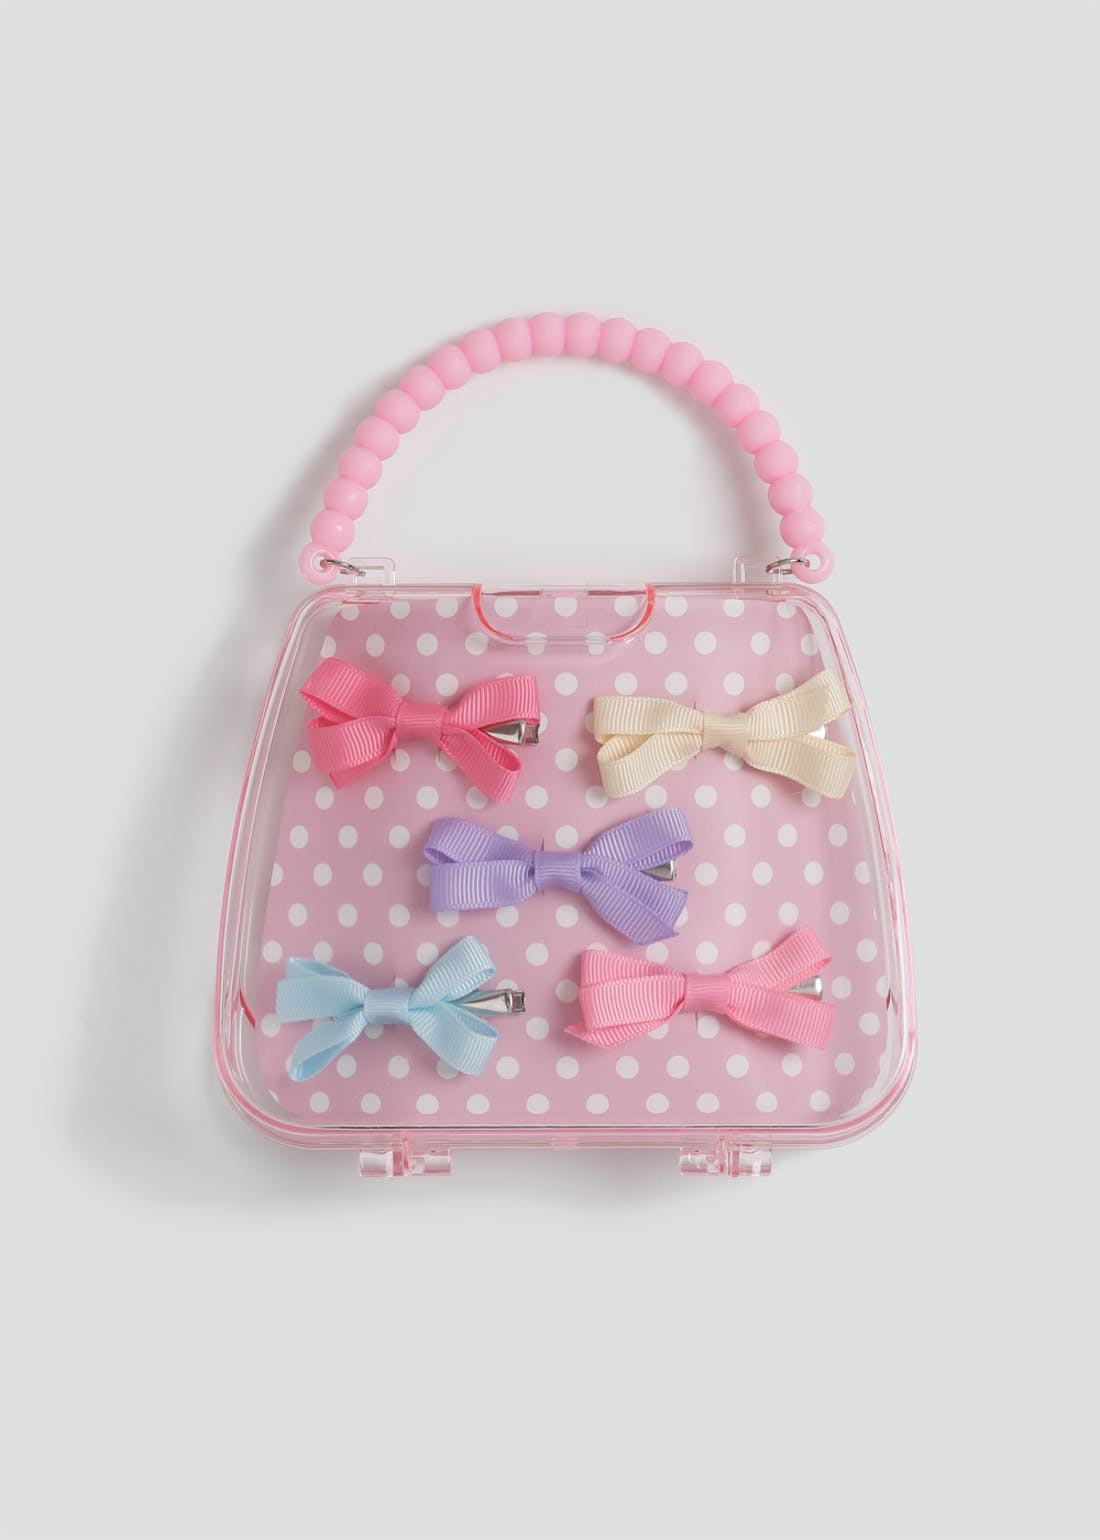 Girls Dress up Handbag with Bow Accessories